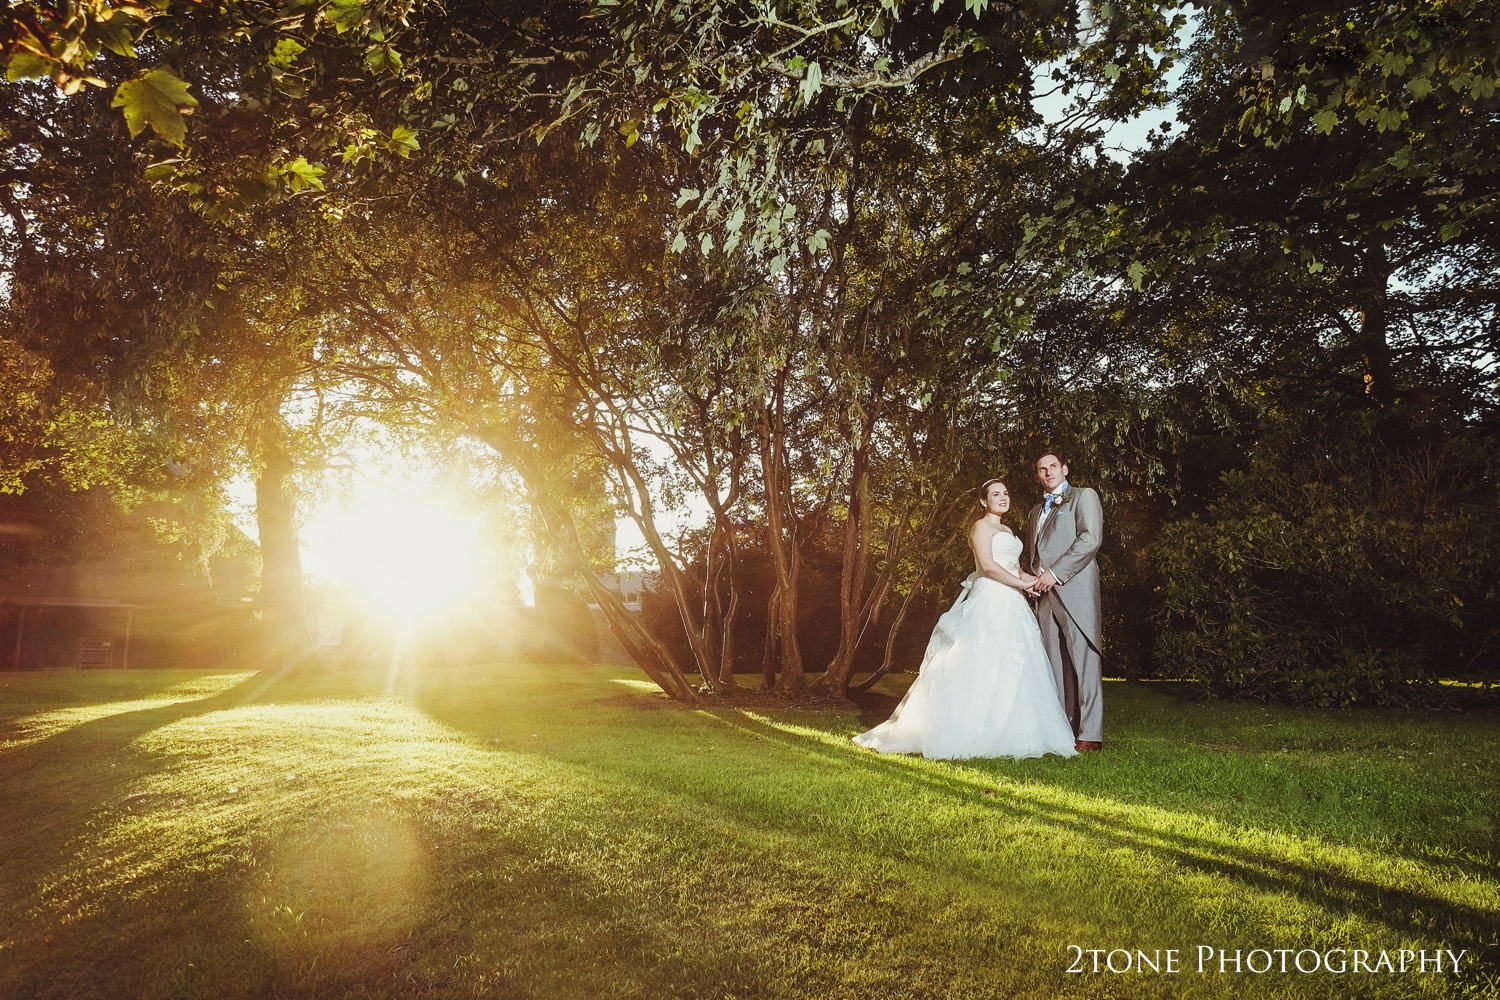 As the sun lowers in the sky, we head outside for one to two last romantic portraits.